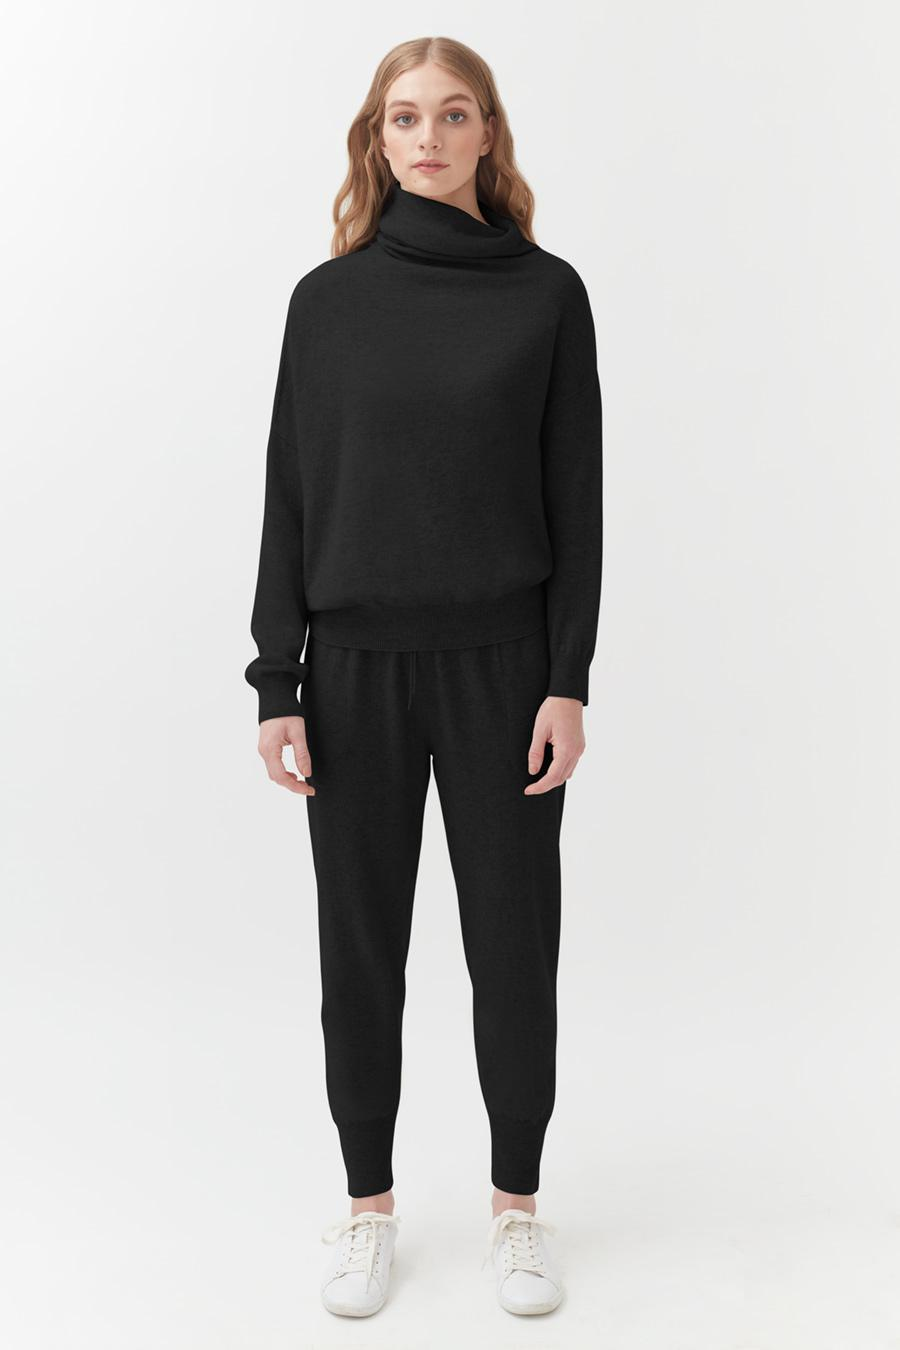 Women's Tapered Pant in Black   Size: XS   Cashmere by Cuyana 1